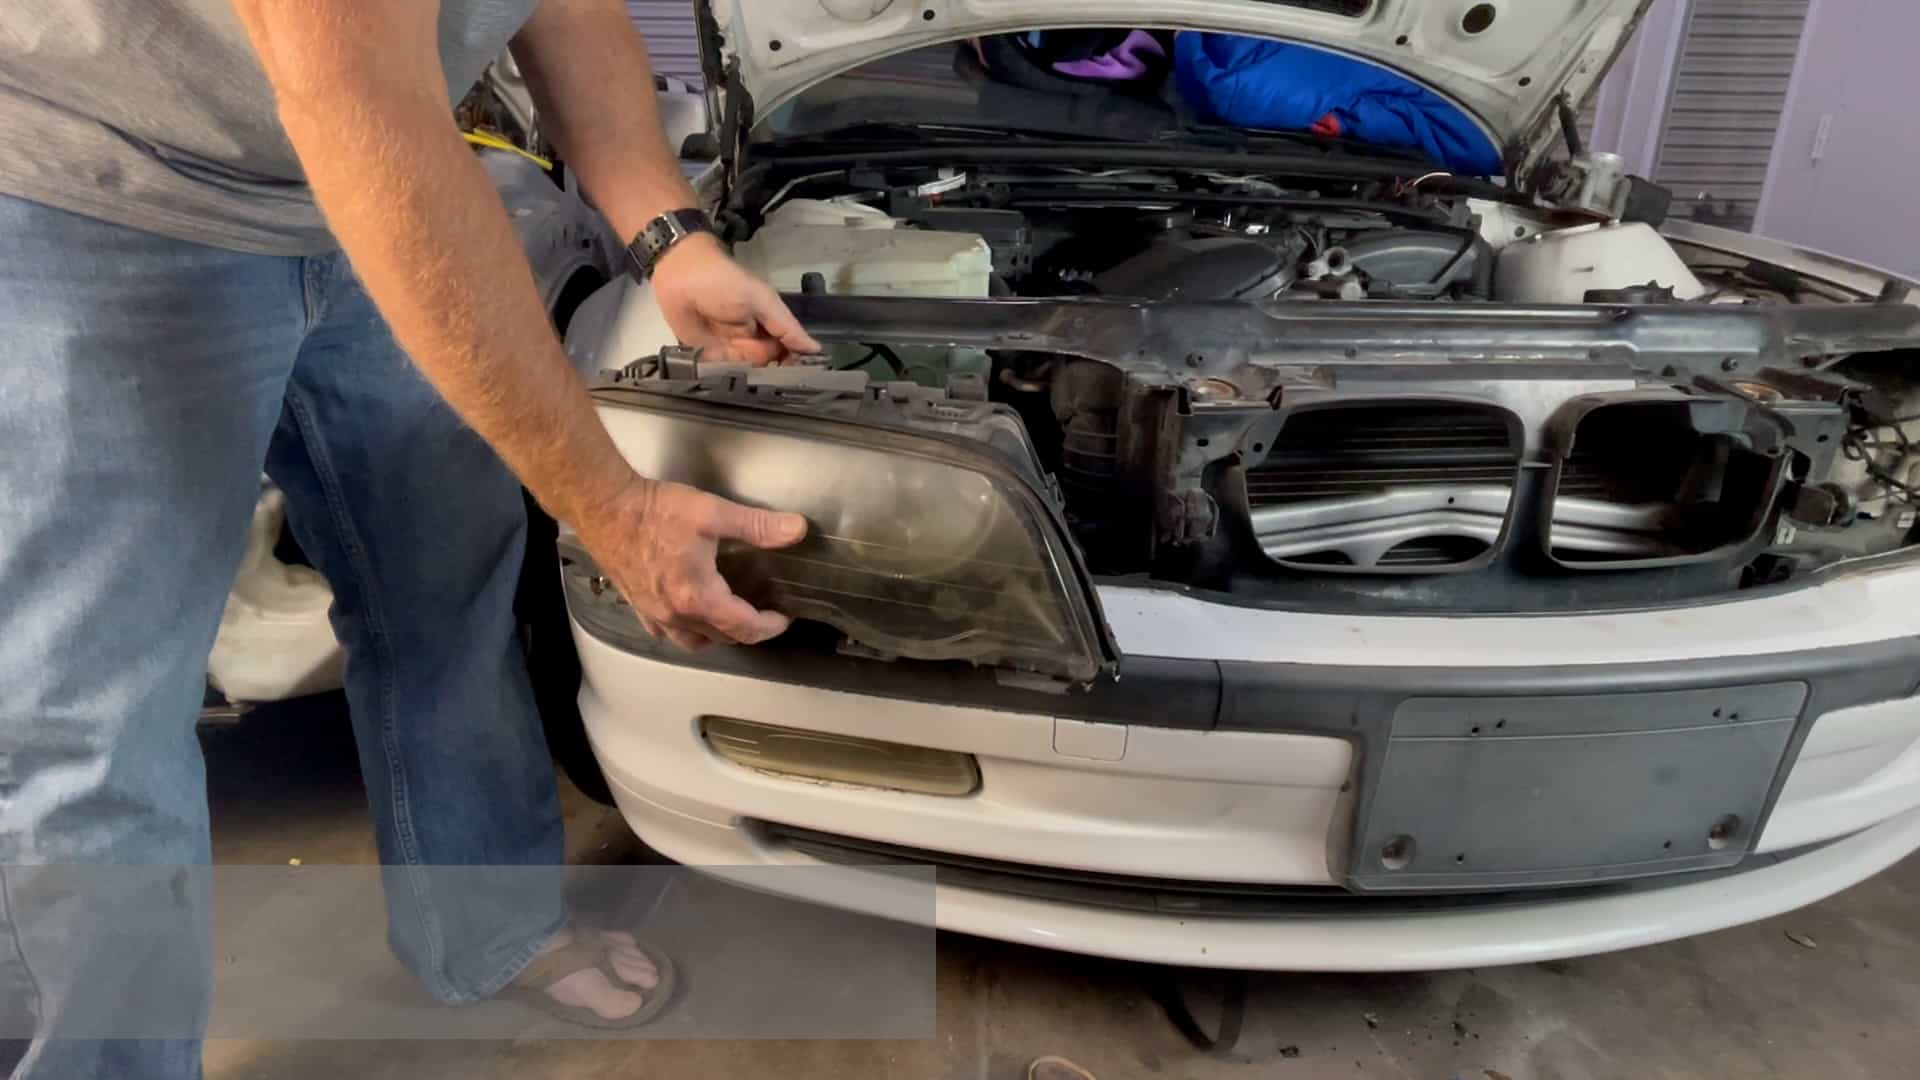 Pull the headlight free so the bulb connections can be remove